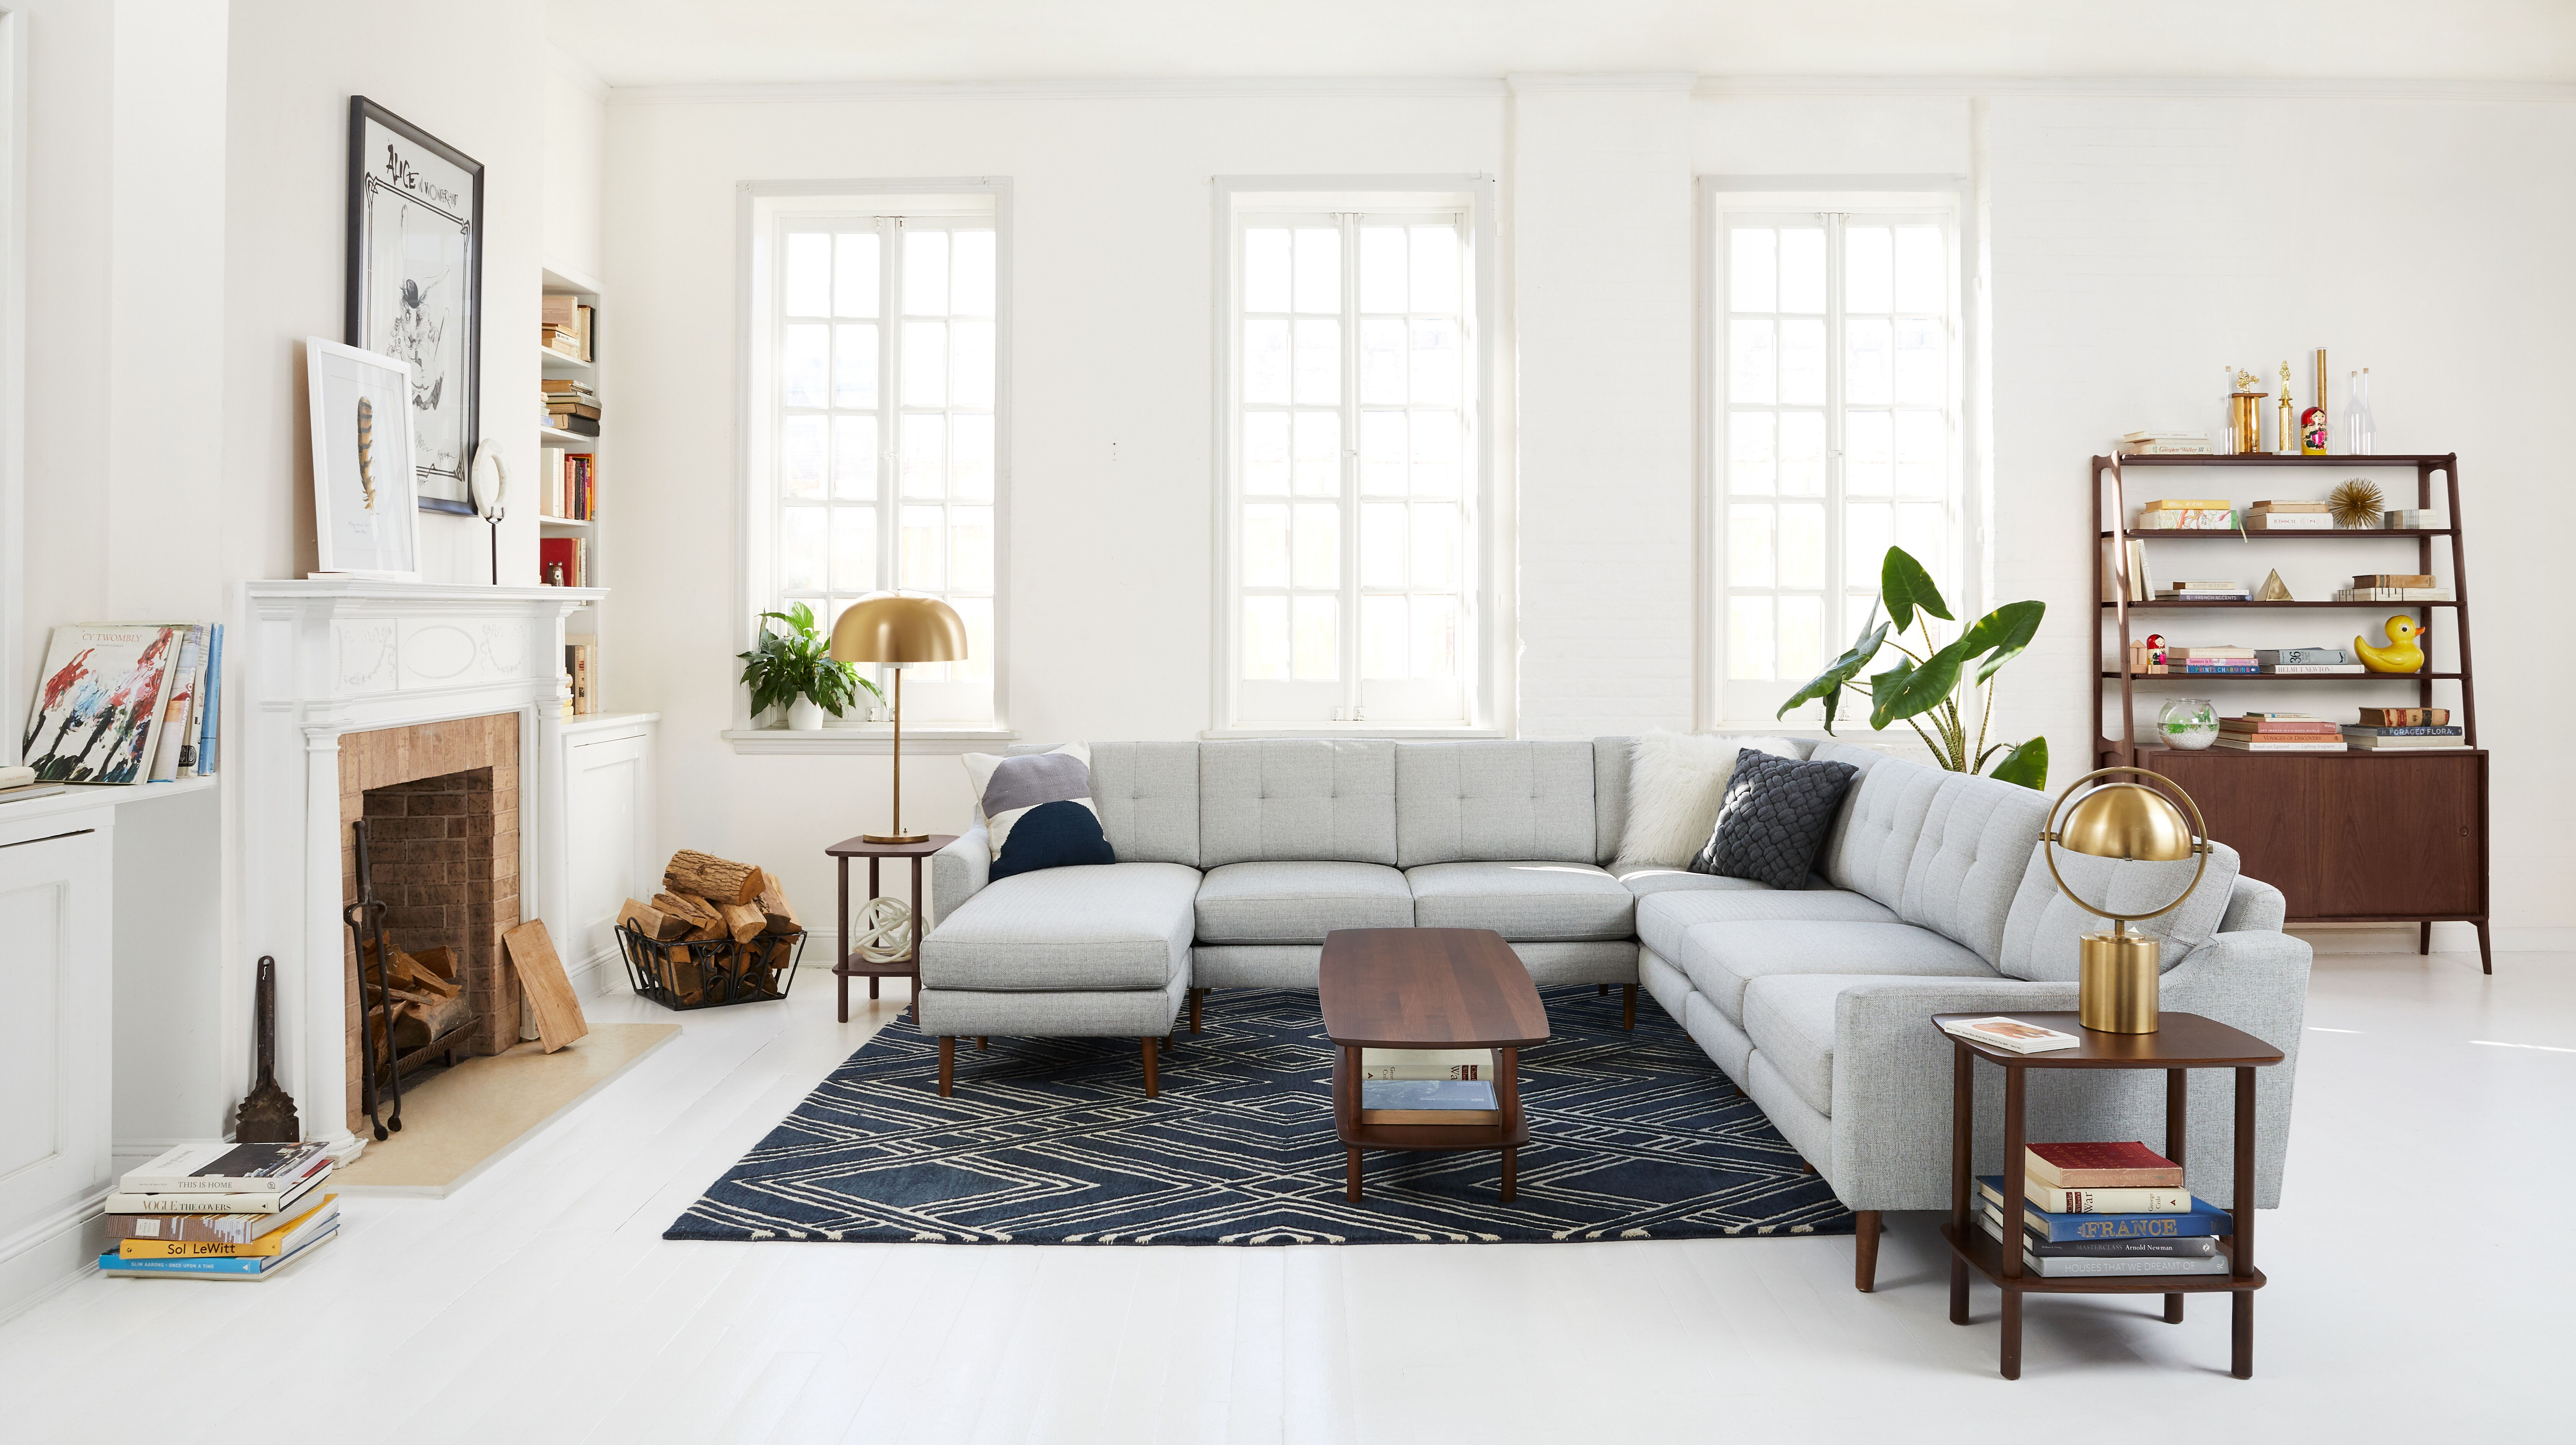 Burrow Just Launched a Line of Rugs That Are Stylish, Durable, and Affordable